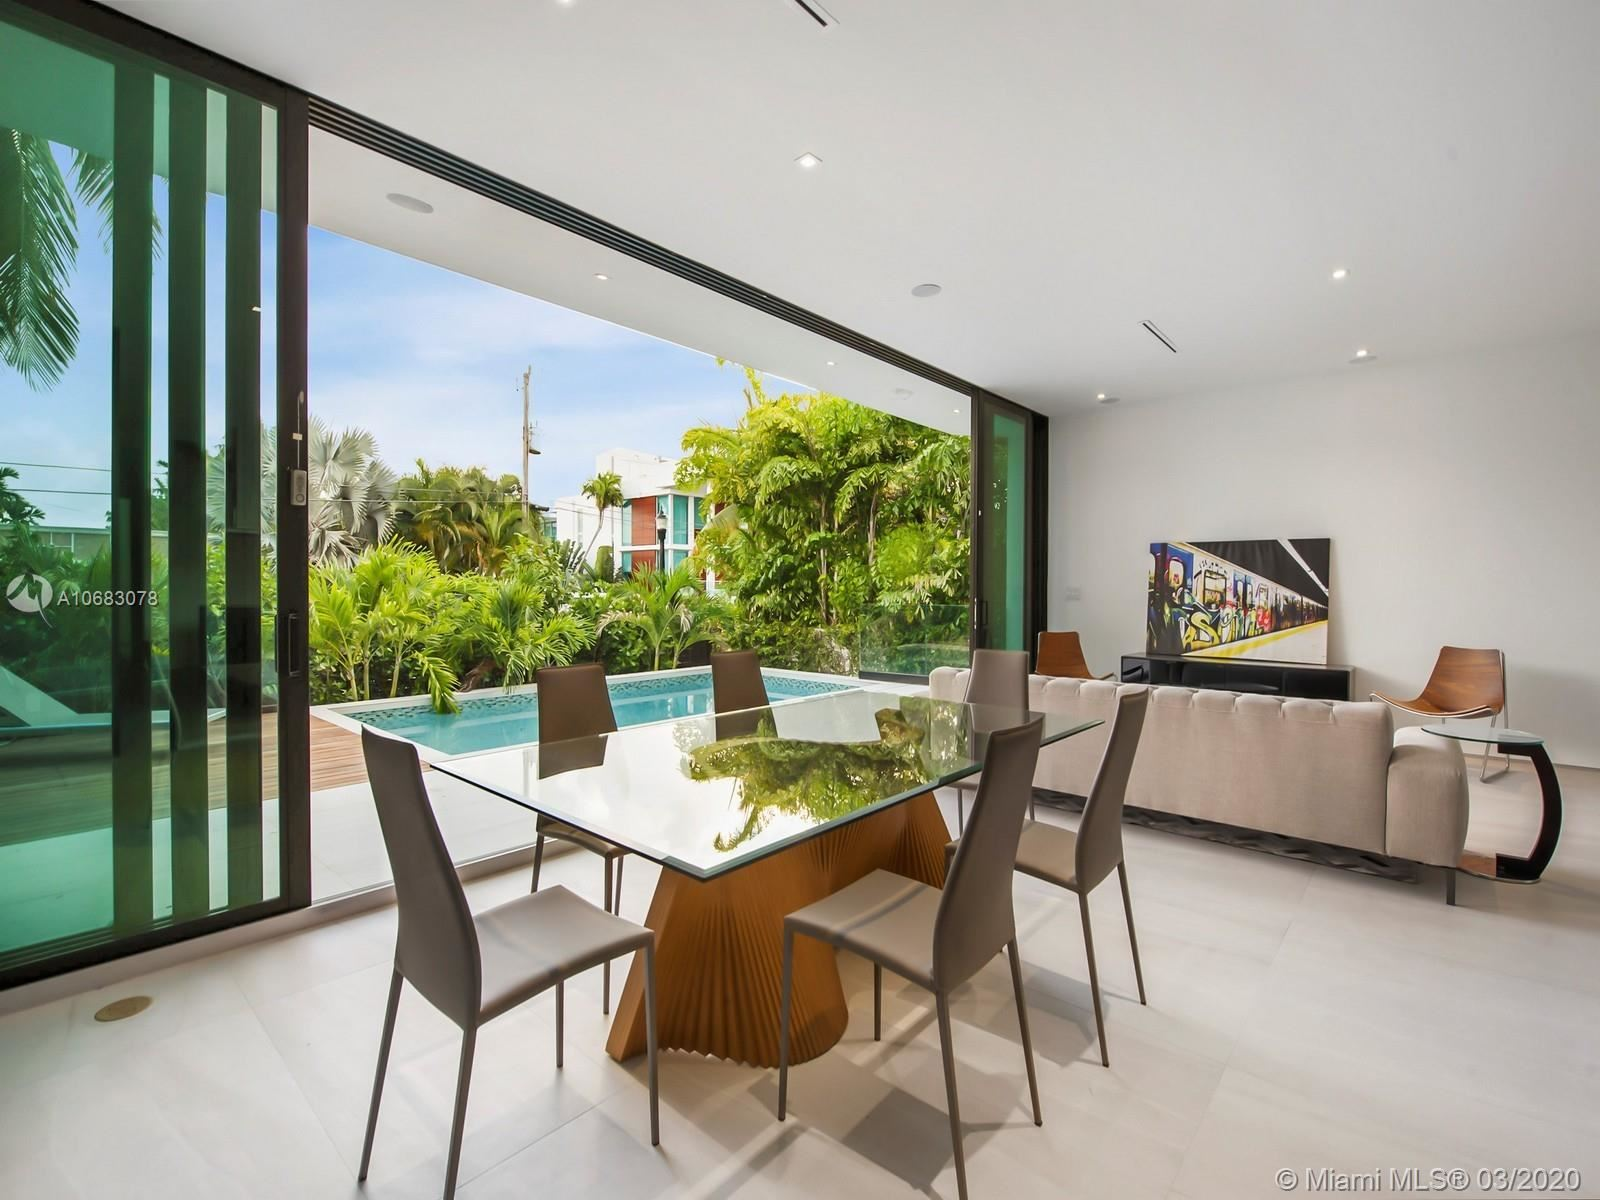 Photo 11 of Listing MLS a10683078 in 272 Palm Ave Miami Beach FL 33139